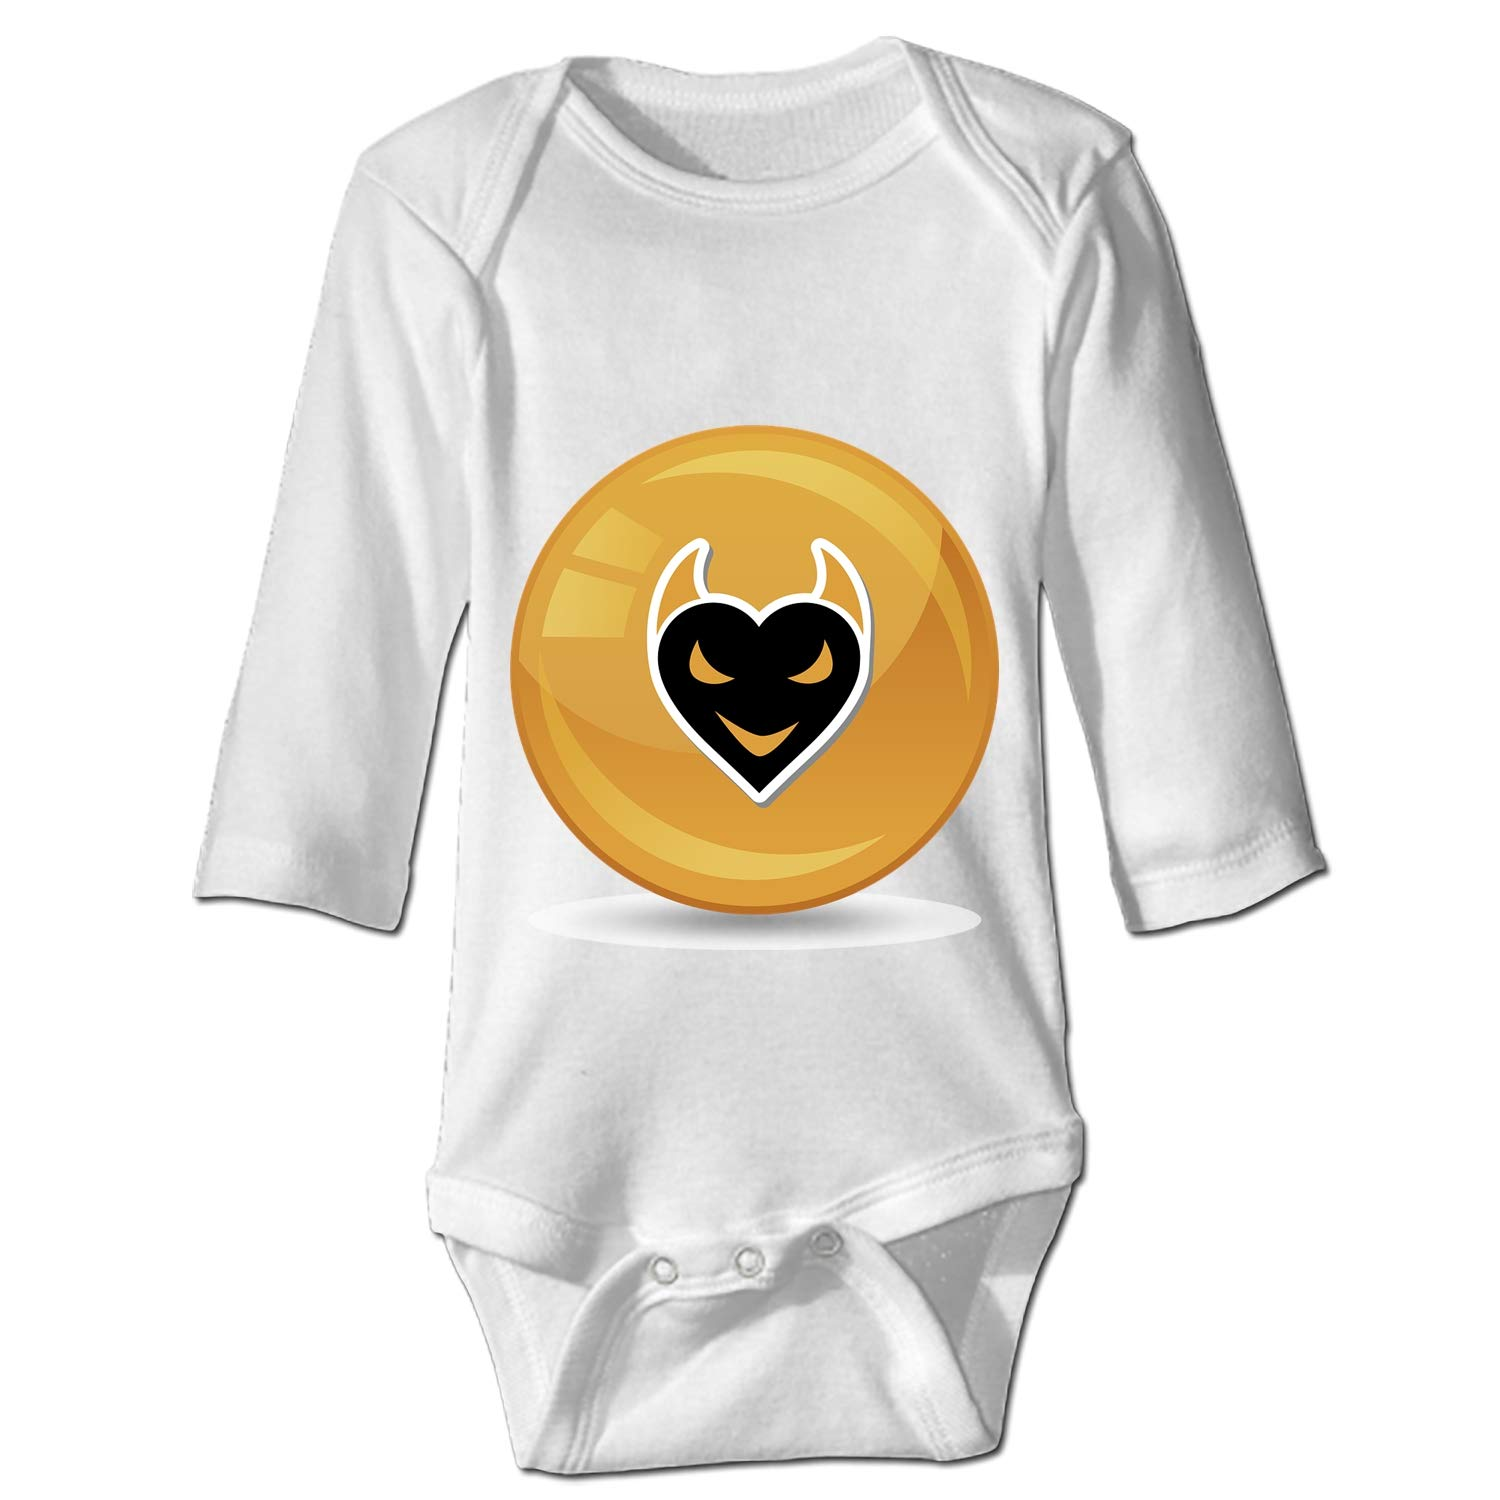 Baby Withered Tree Halloween Bodysuits Rompers Outfits Clothes,Long Sleeve